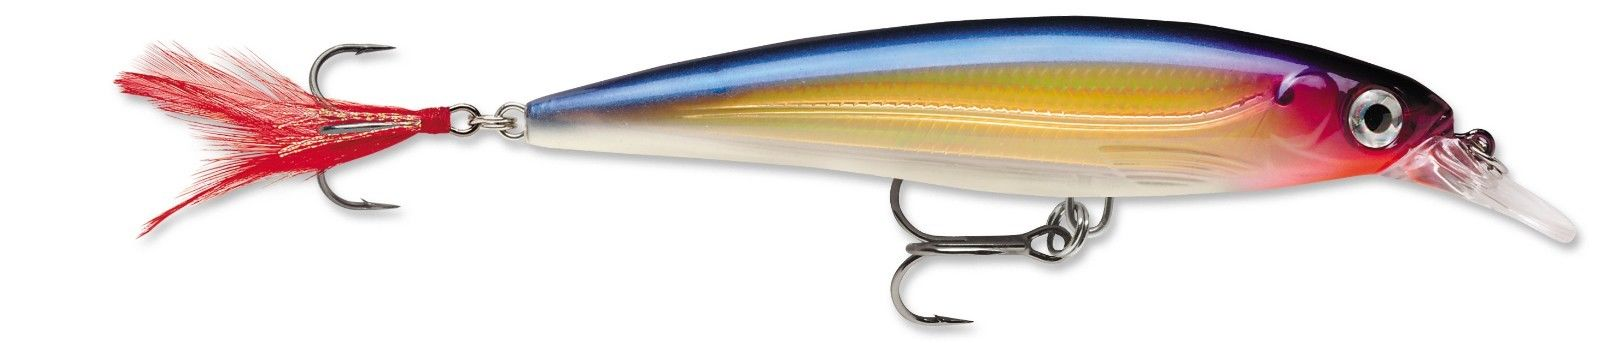 Rapala X-Rap 06 Shallow Diving Jerkbait